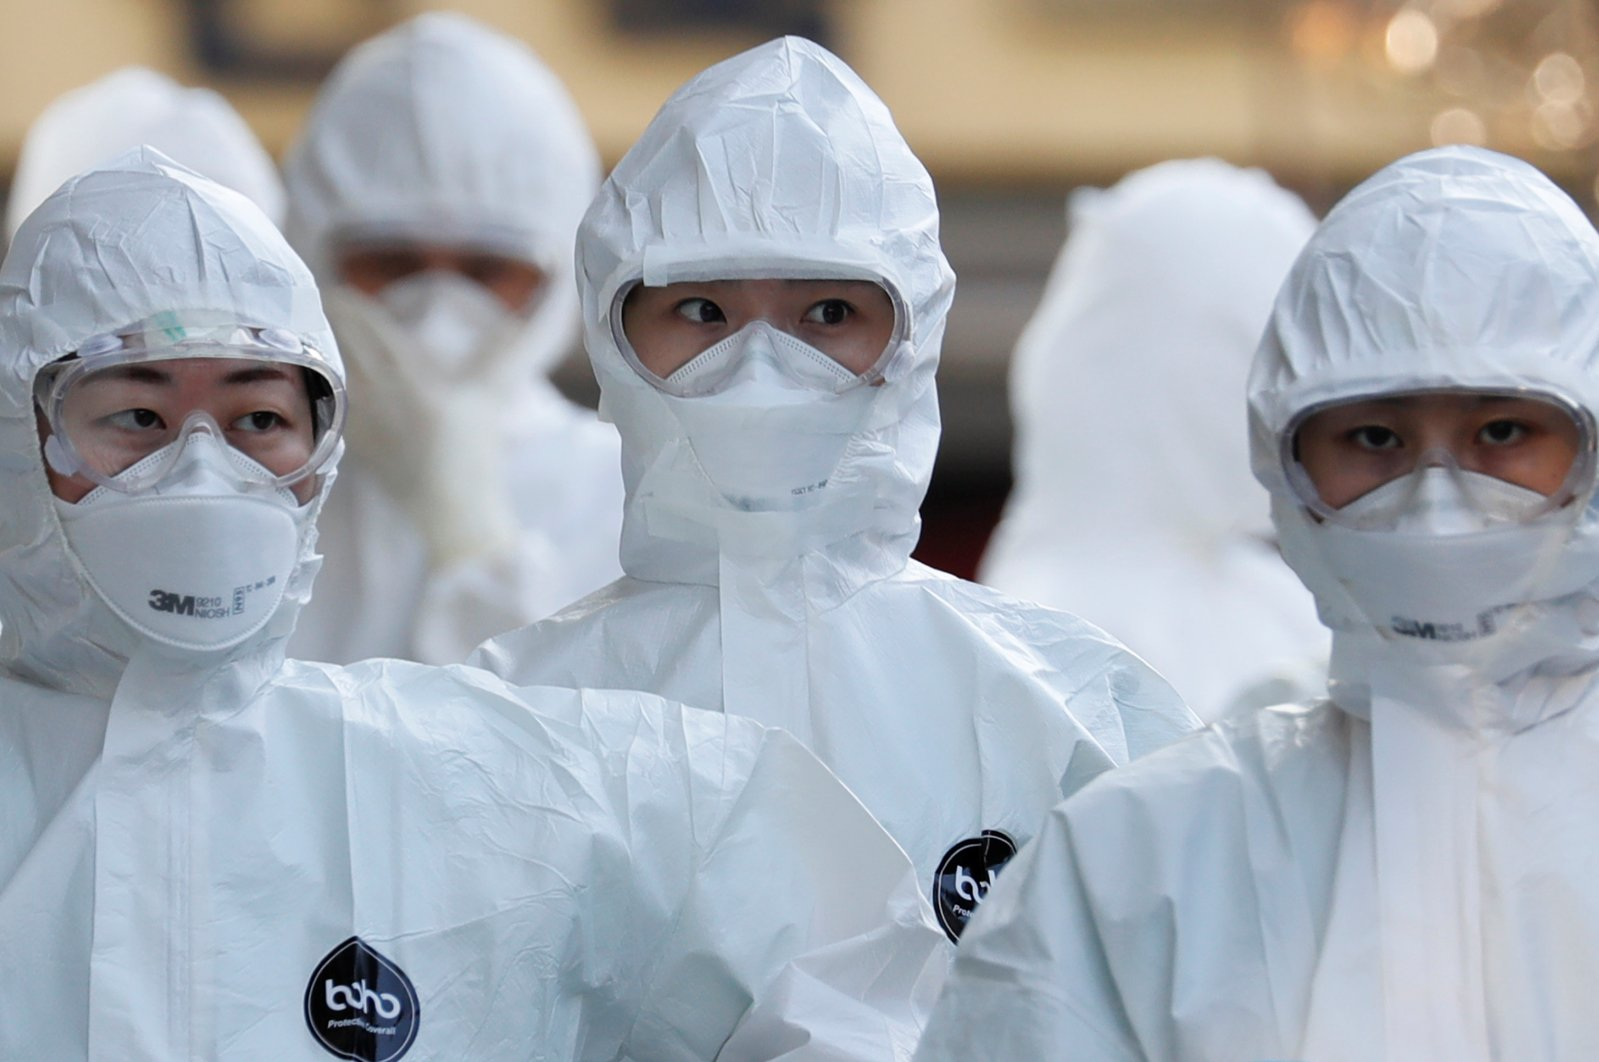 Medical workers in protective gears walk into a hospital facility to treat coronavirus patients amid the rise in confirmed cases in Daegu, South Korea, March 8, 2020. (Reuters Photo)